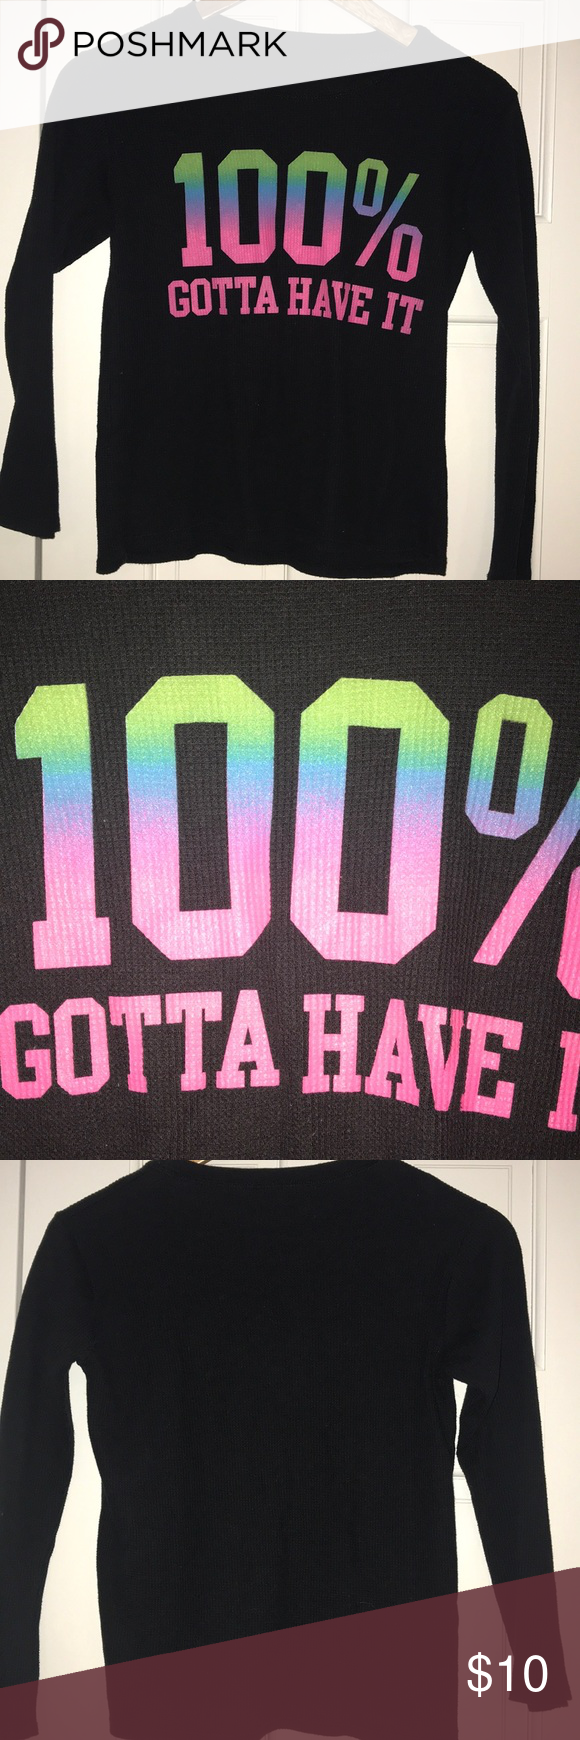 "Girls Thermal ""100% Gotta to Have It"" Graphic Top Girls size 14  Long Sleeve Black Thermal Top Rainbow "" 100% Gotta Have It"" Graphic  Like New Condition Shirts & Tops #gottahaveit Girls Thermal ""100% Gotta to Have It"" Graphic Top Girls size 14  Long Sleeve Black Thermal Top Rainbow "" 100% Gotta Have It"" Graphic  Like New Condition Shirts & Tops #gottahaveit"